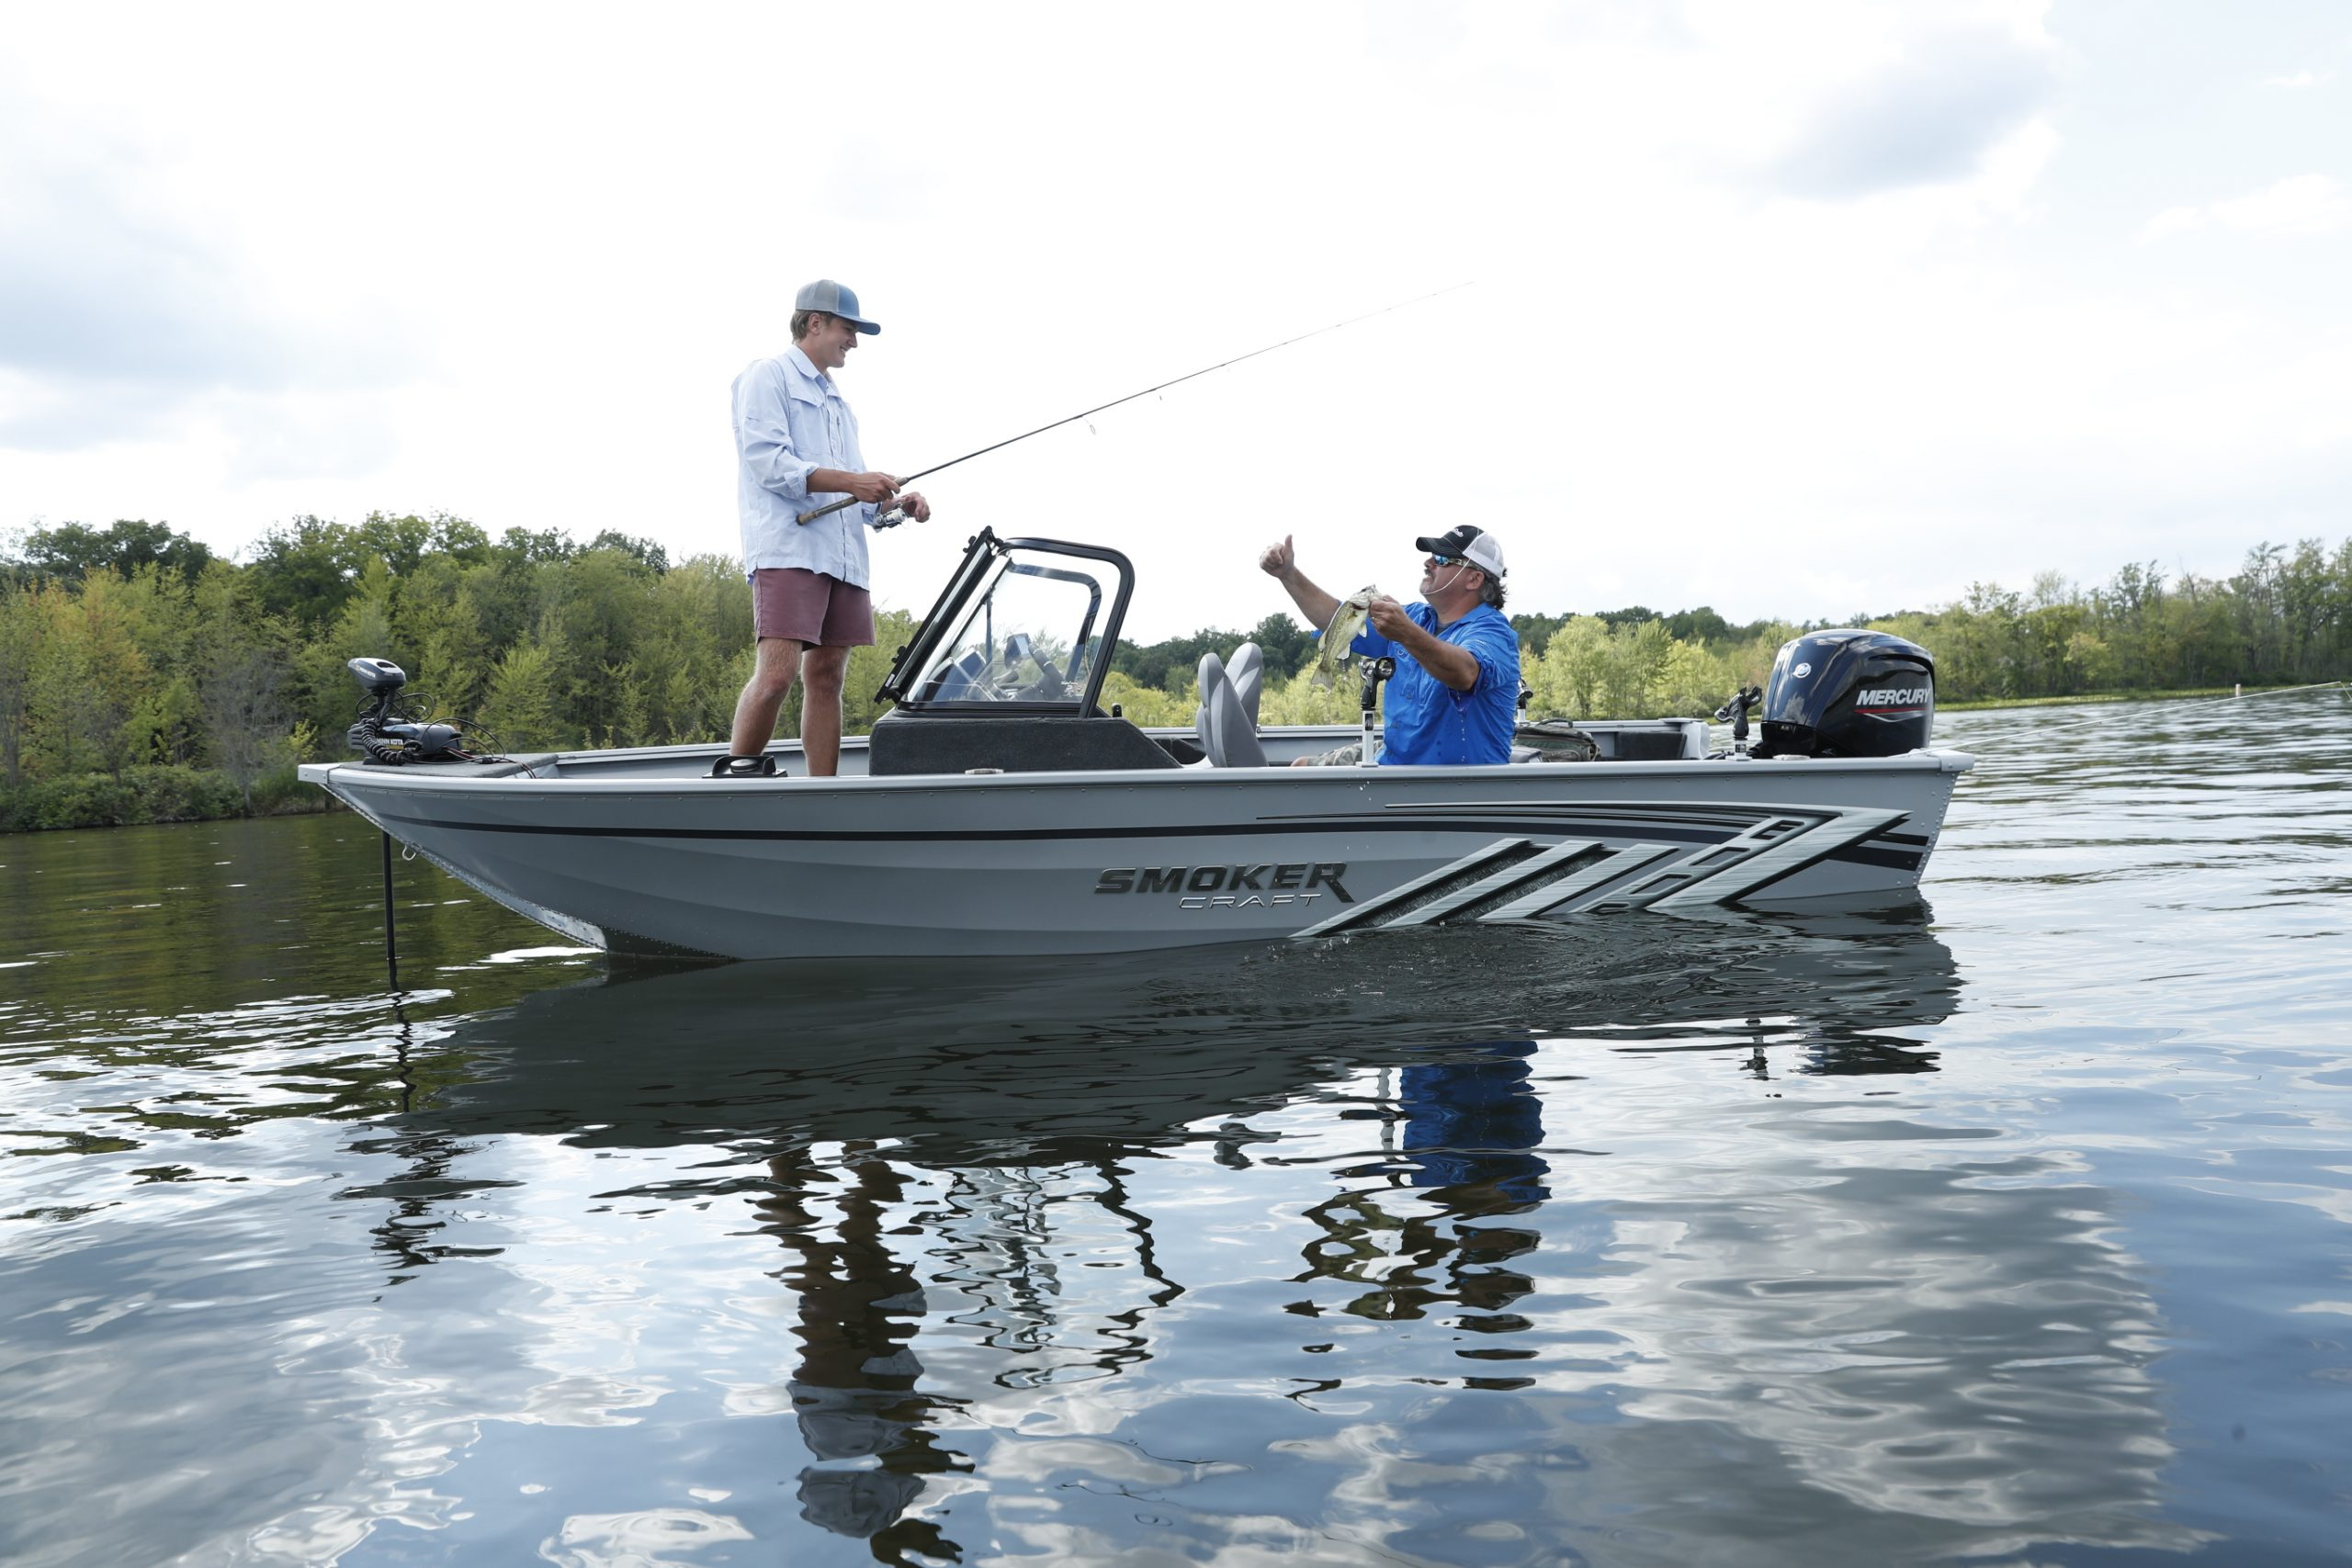 Smoker Craft Boats offers the perfect fishing boat for all different fishing styles and techniques.